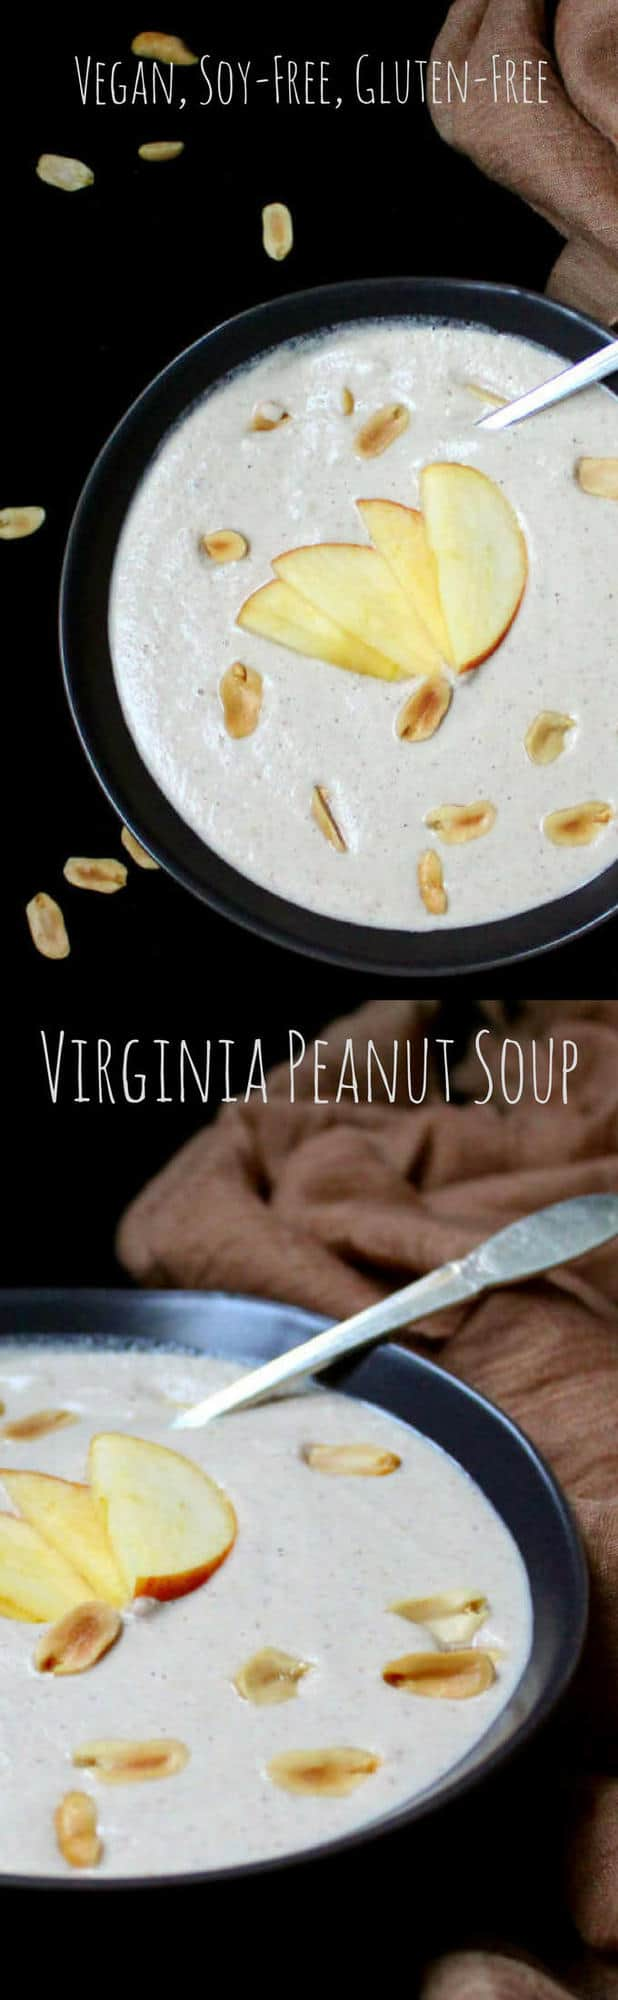 Virginia Peanut Soup - HolyCowVegan.net